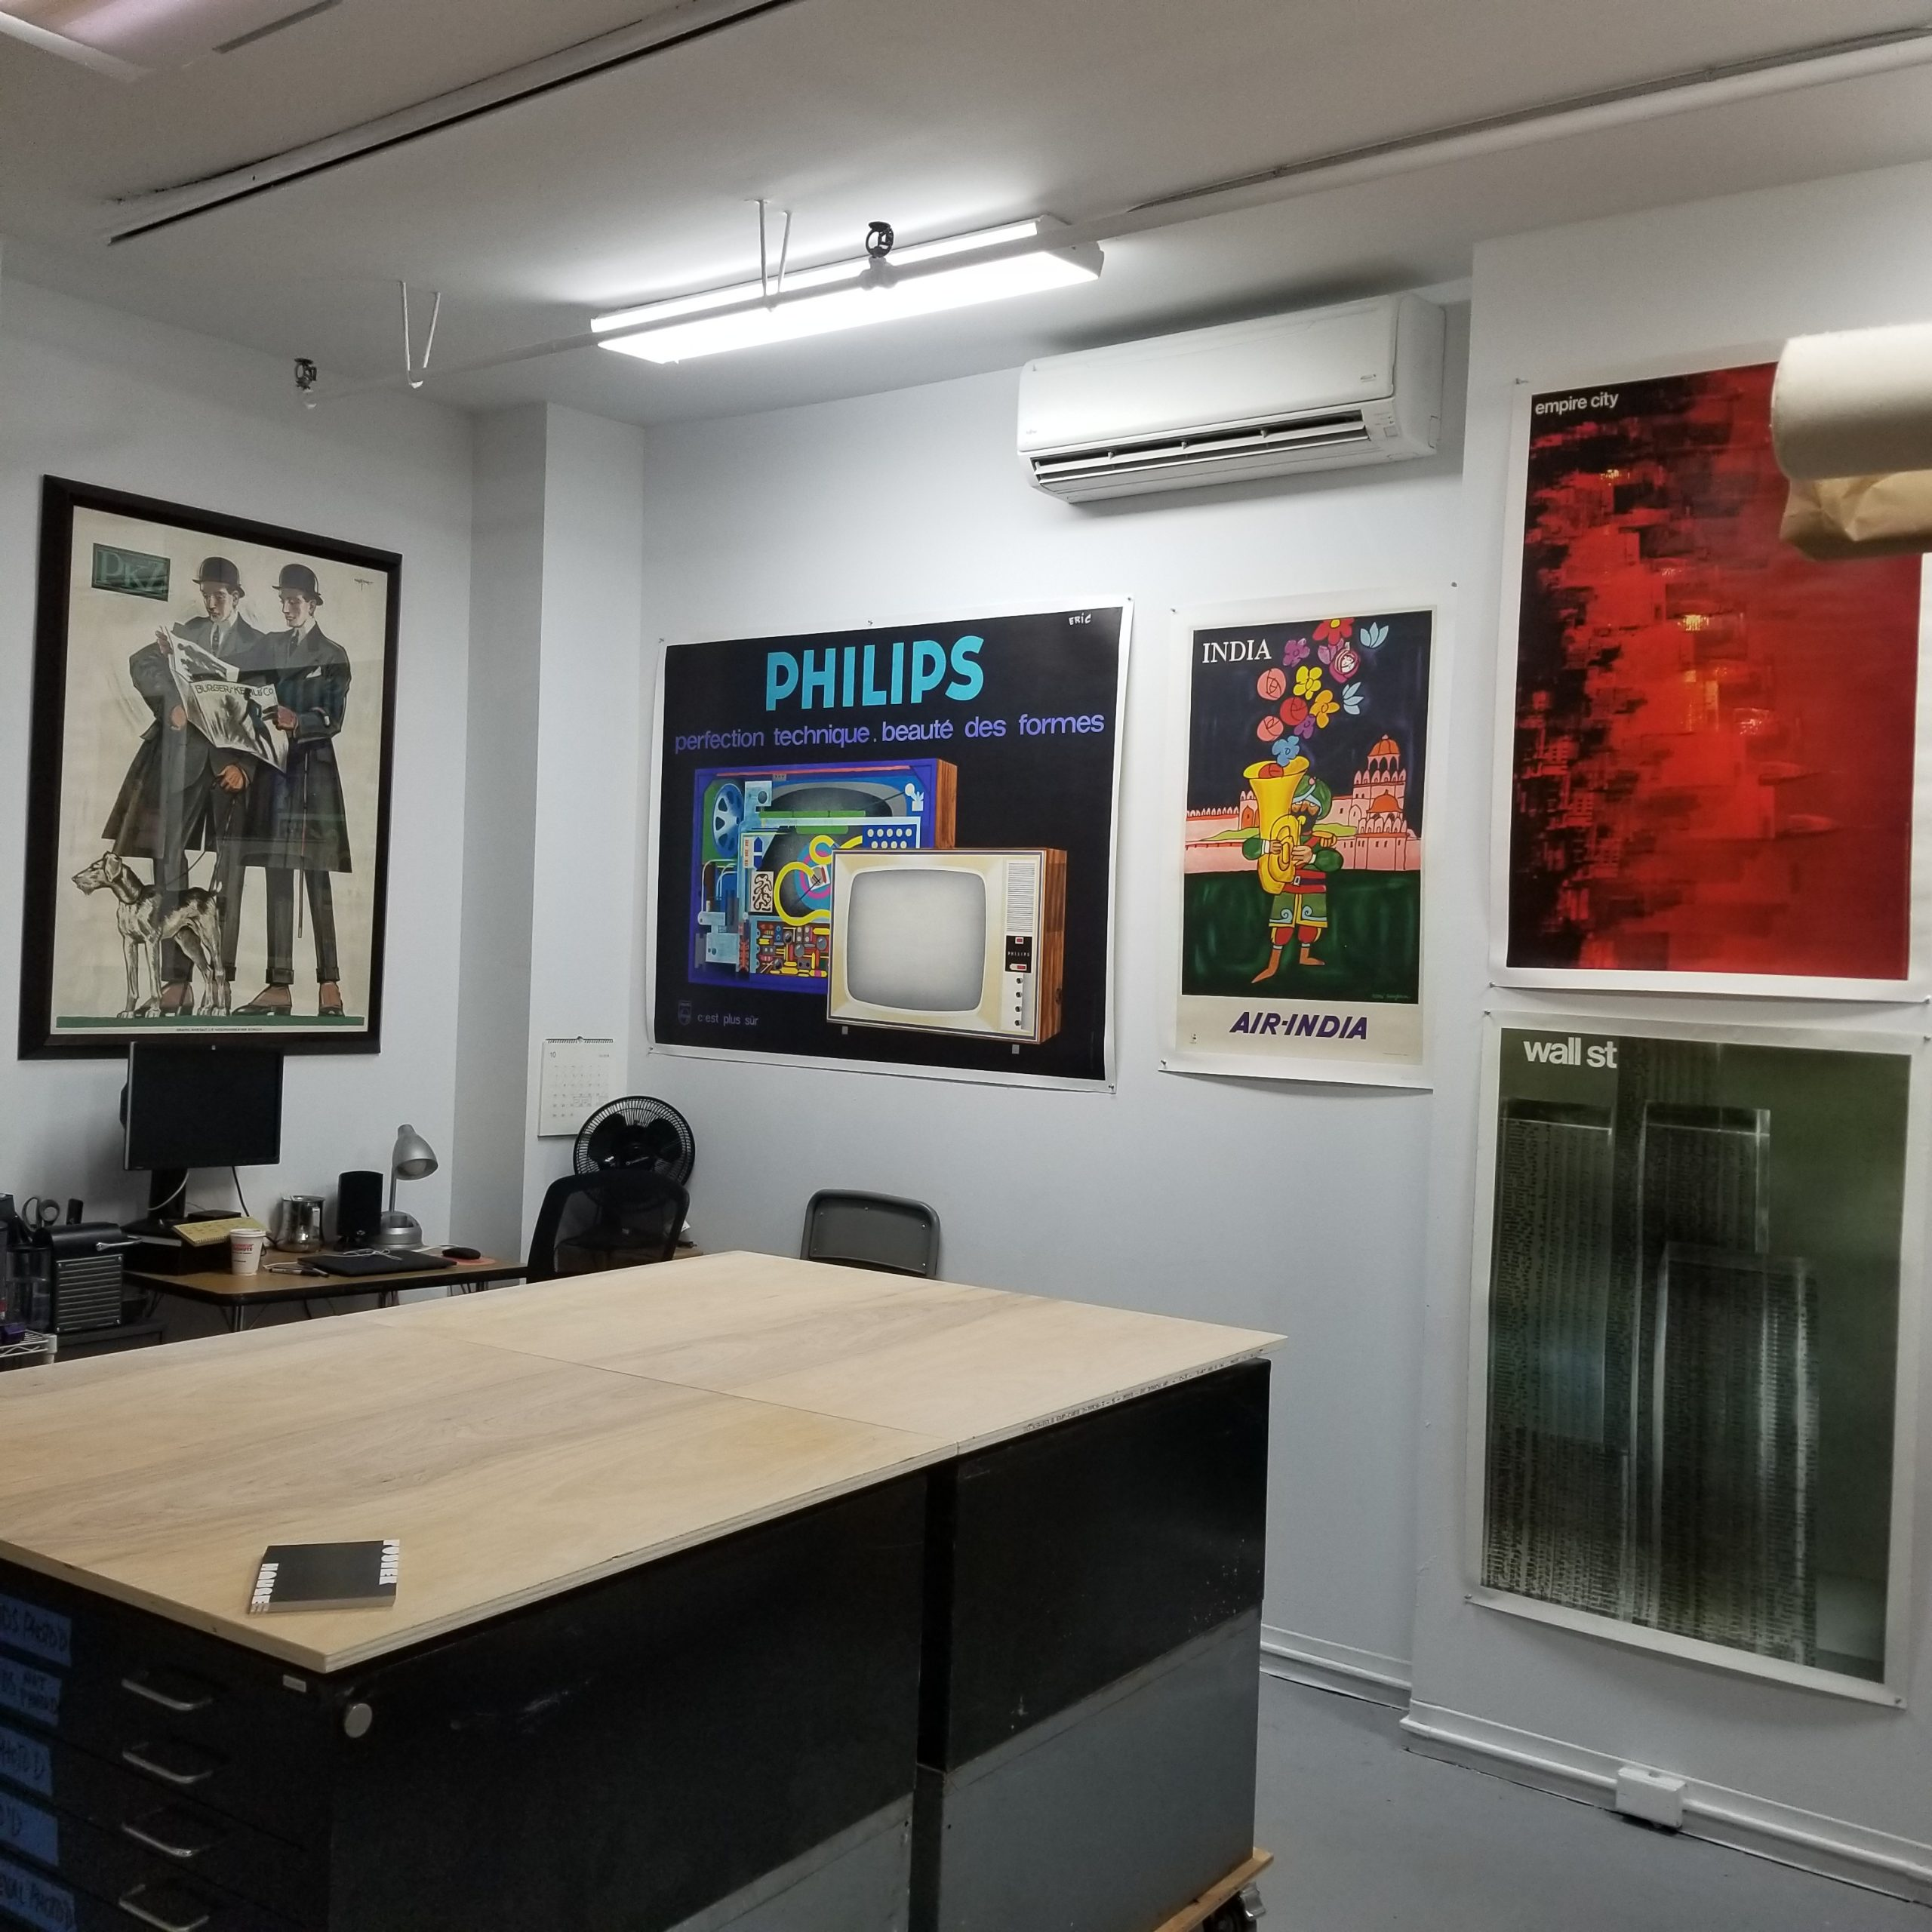 photograph of an interior office space with a large table and posters on the wall